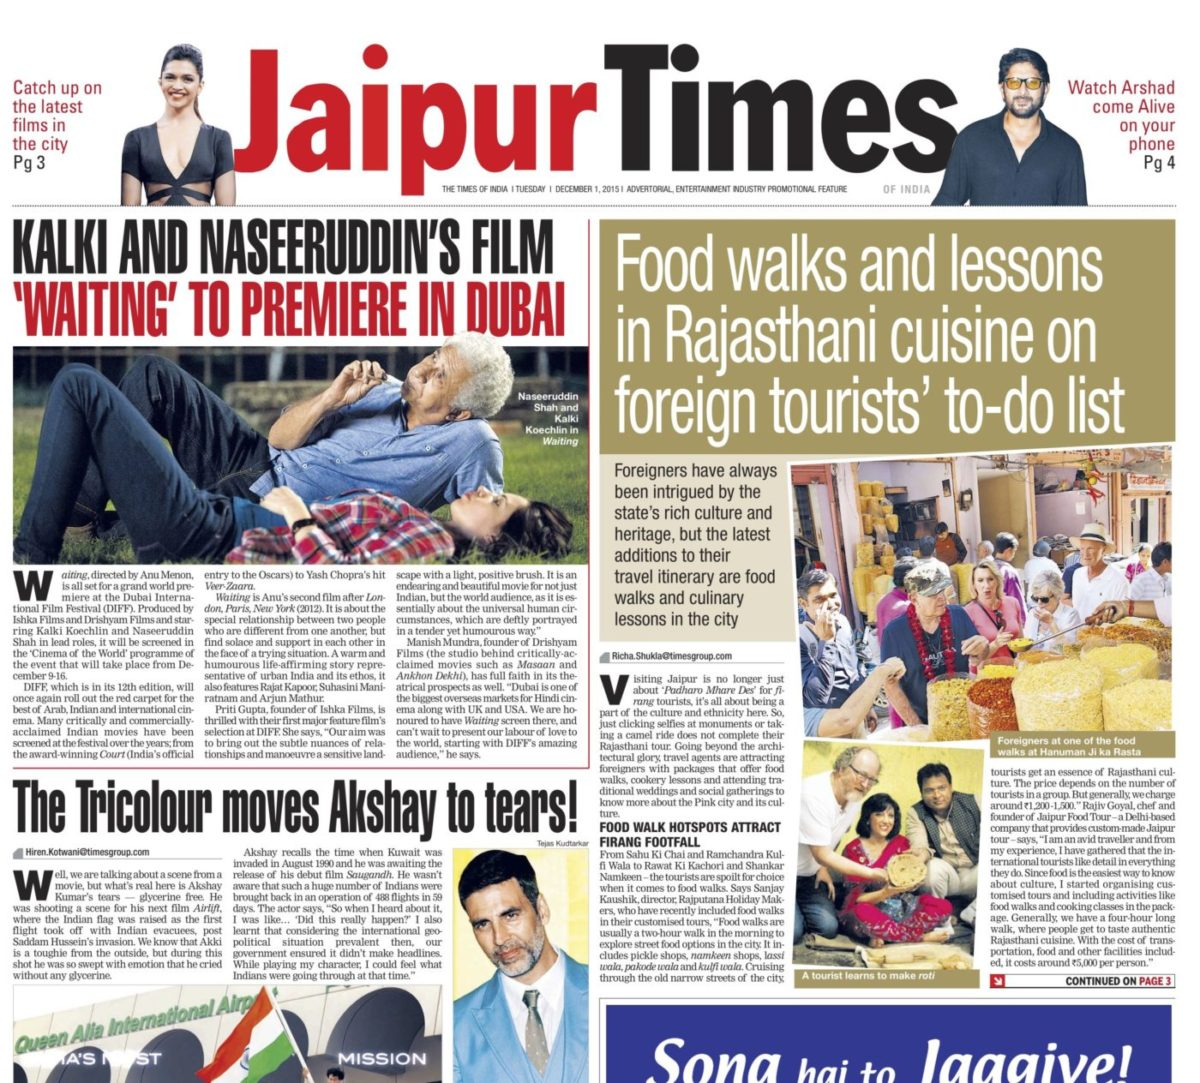 Jaipur Times 1 Dec 2015. Food tours Can't miss out on Rajasthani cuisine and shaadis, say foriegn tourists Richa Shukla   Foreigners have always been intrigued by the state's rich culture and heritage, but the latest additions to their travel itinerary are food walks and culinary lessons in the city